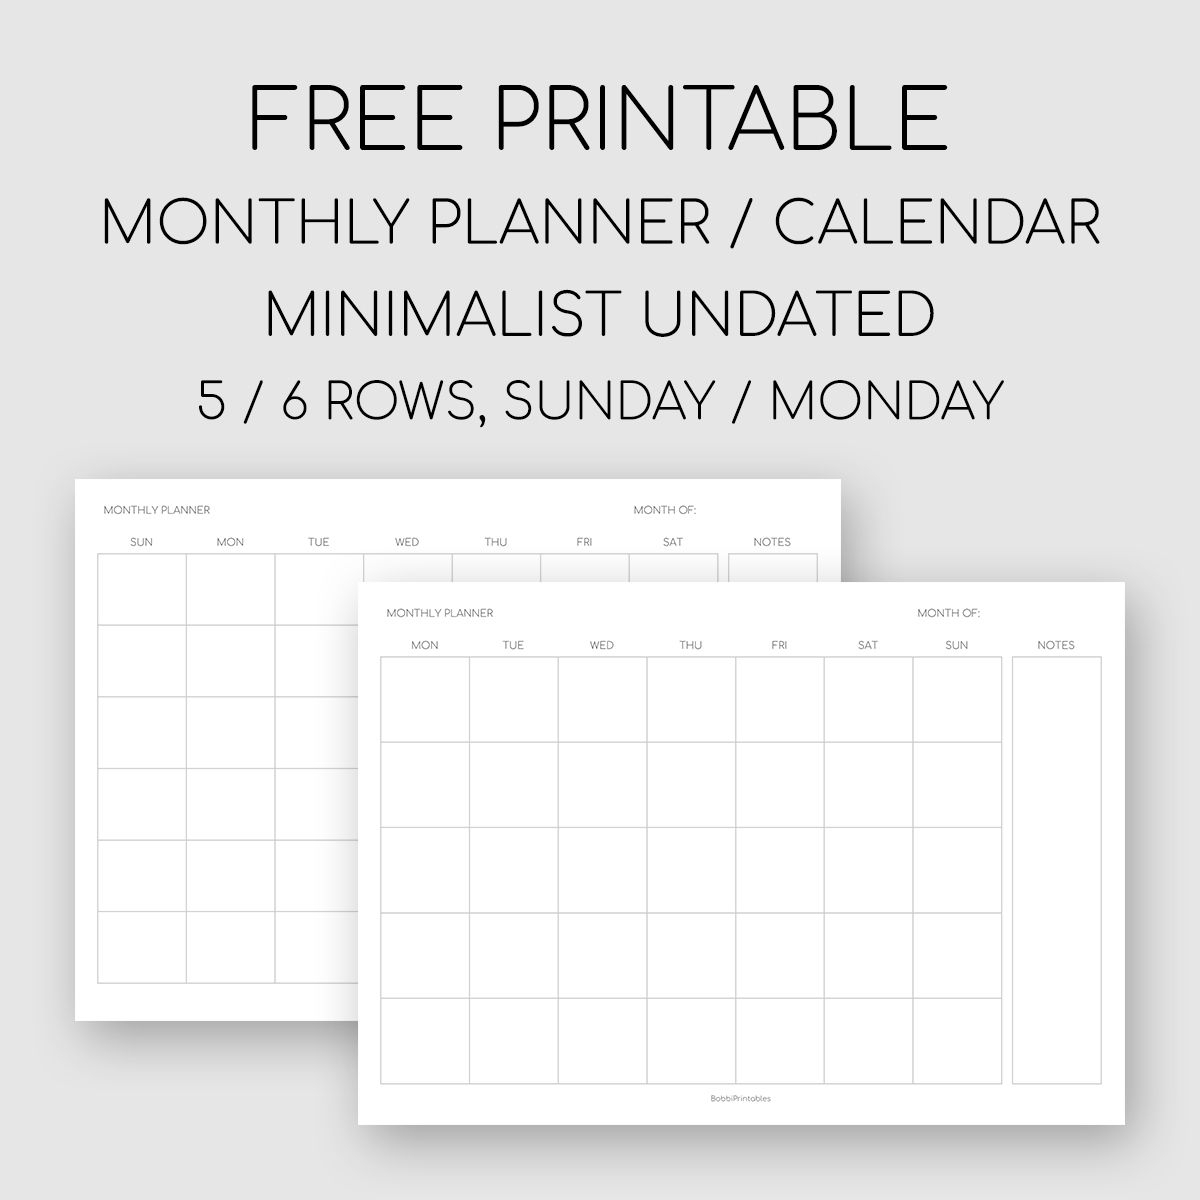 Free Printable Undated Monthly Calendar In 2020 | Monthly regarding Undated Free Monthly Calendar Printable Free